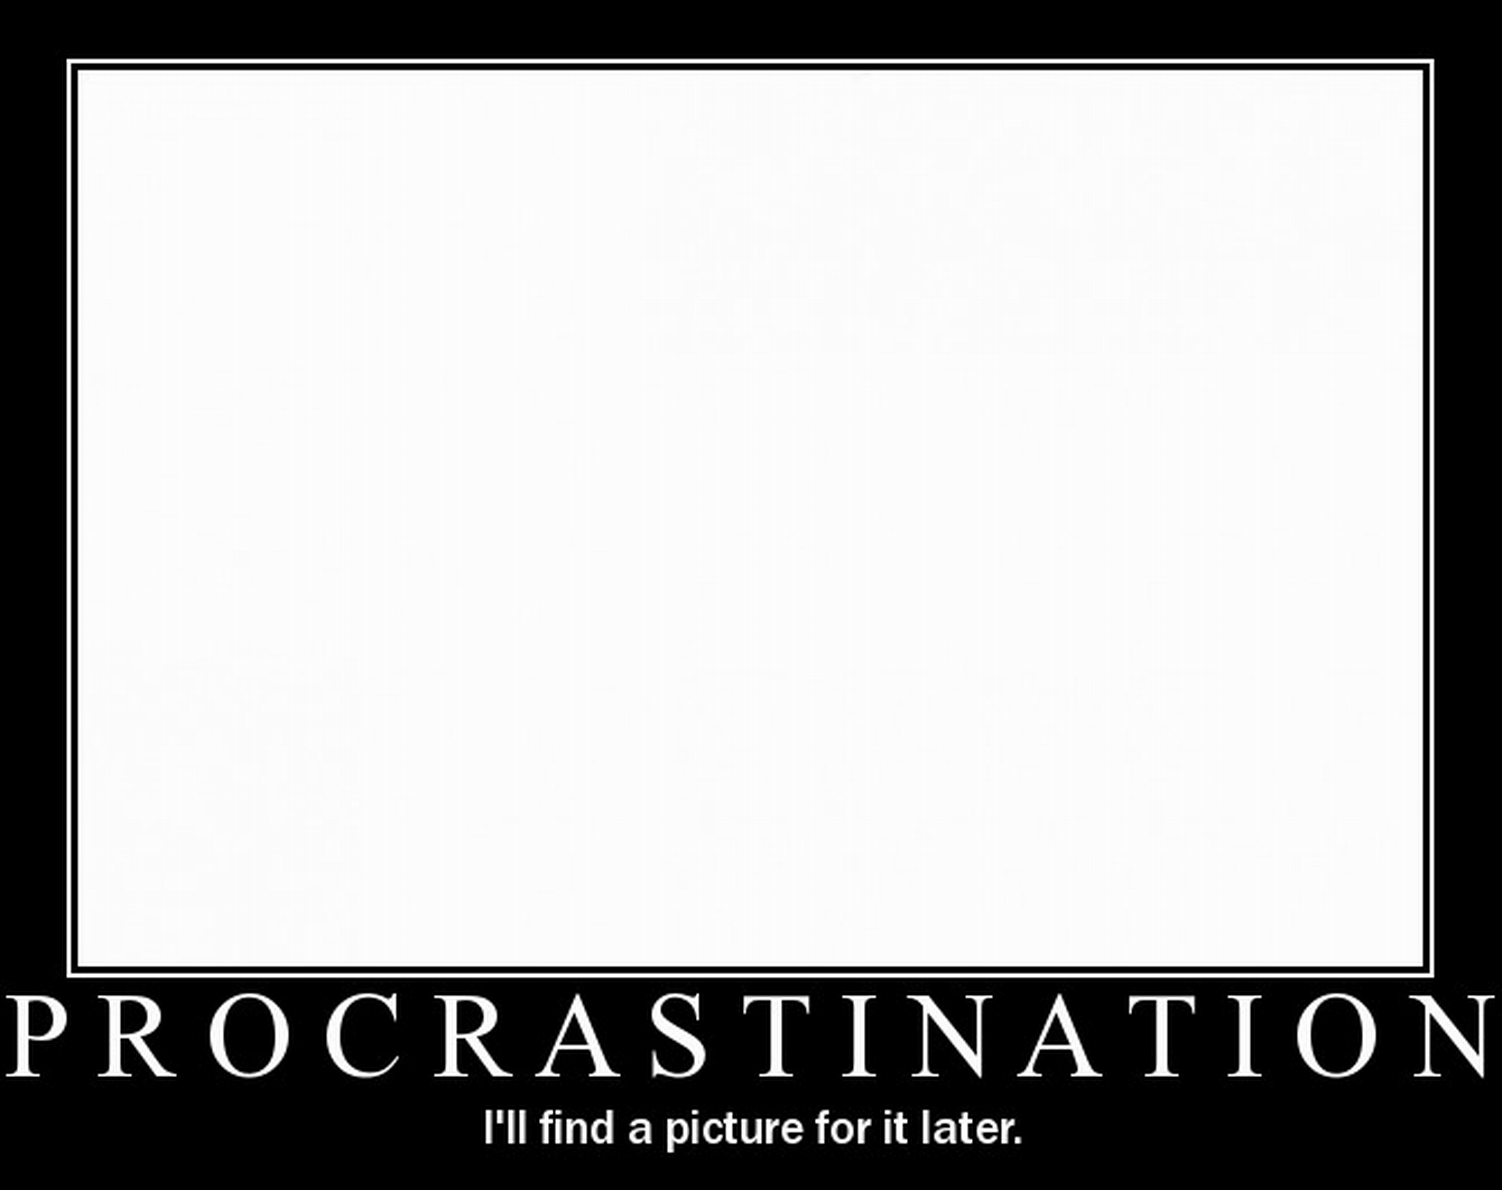 Procrastination and all that stuff...